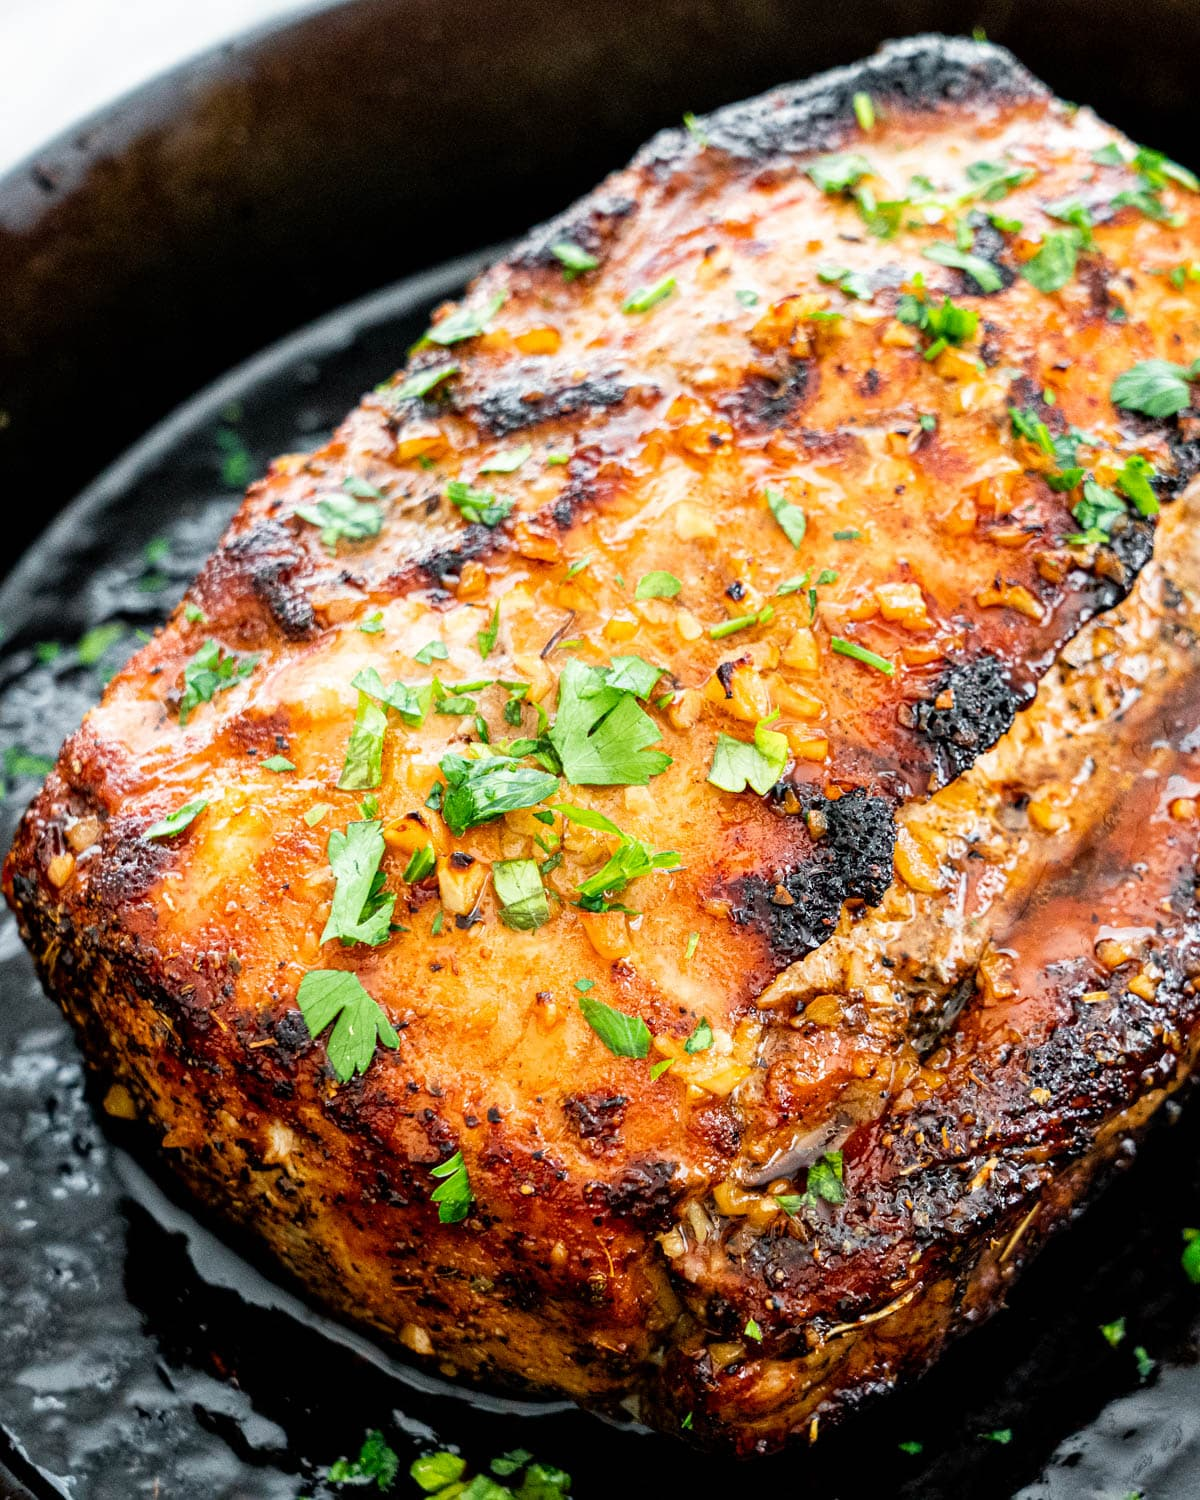 a pork loin glazed with honey garlic sauce in a skillet garnished with parsley